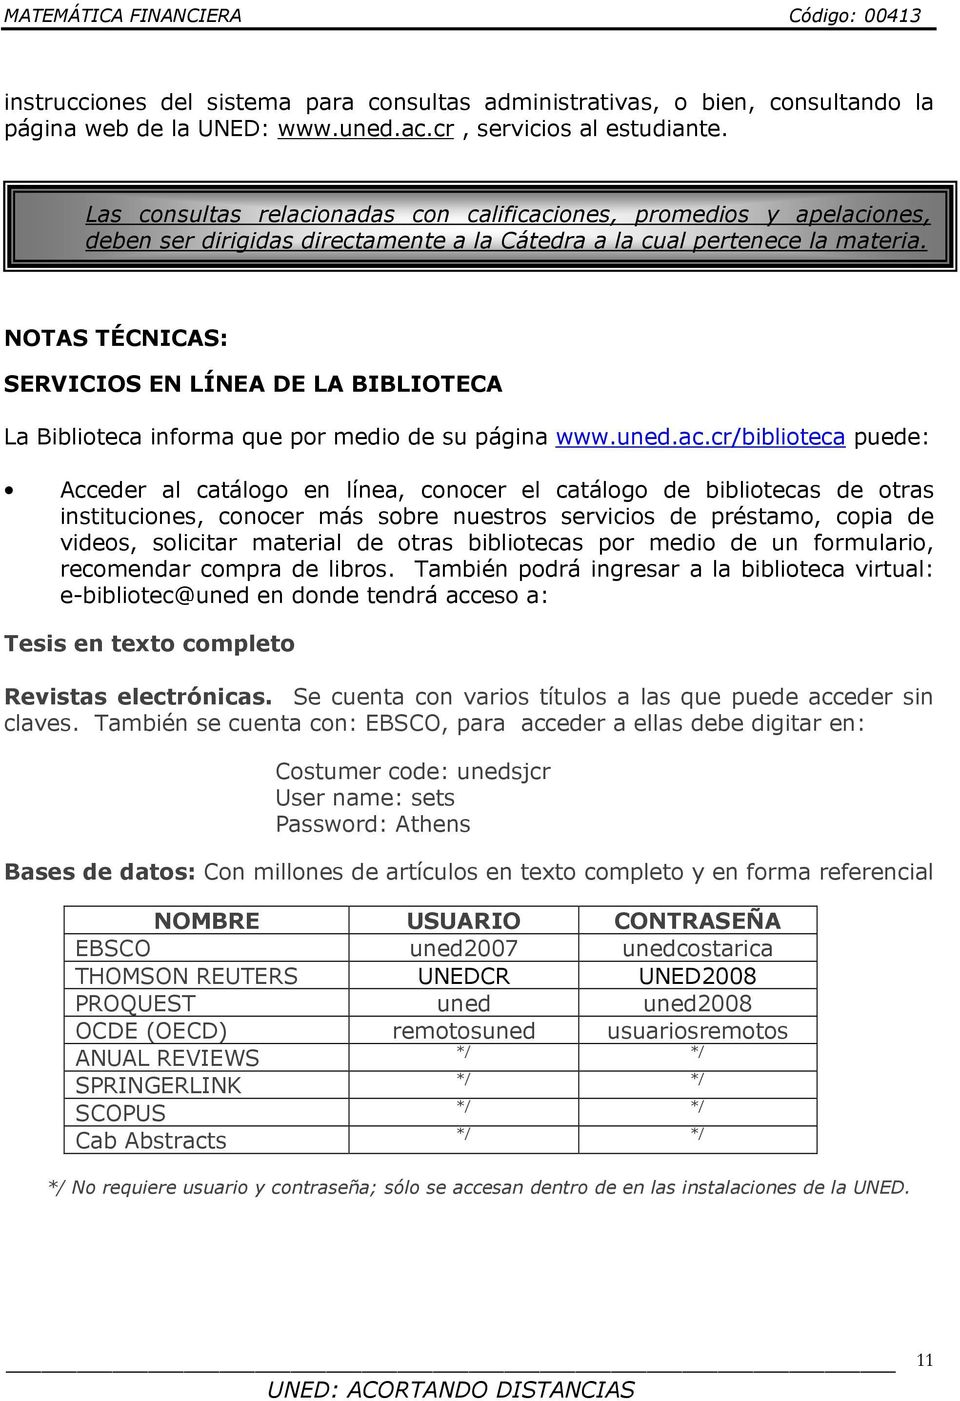 Matem tica financiera pdf for Biblioteca uned catalogo